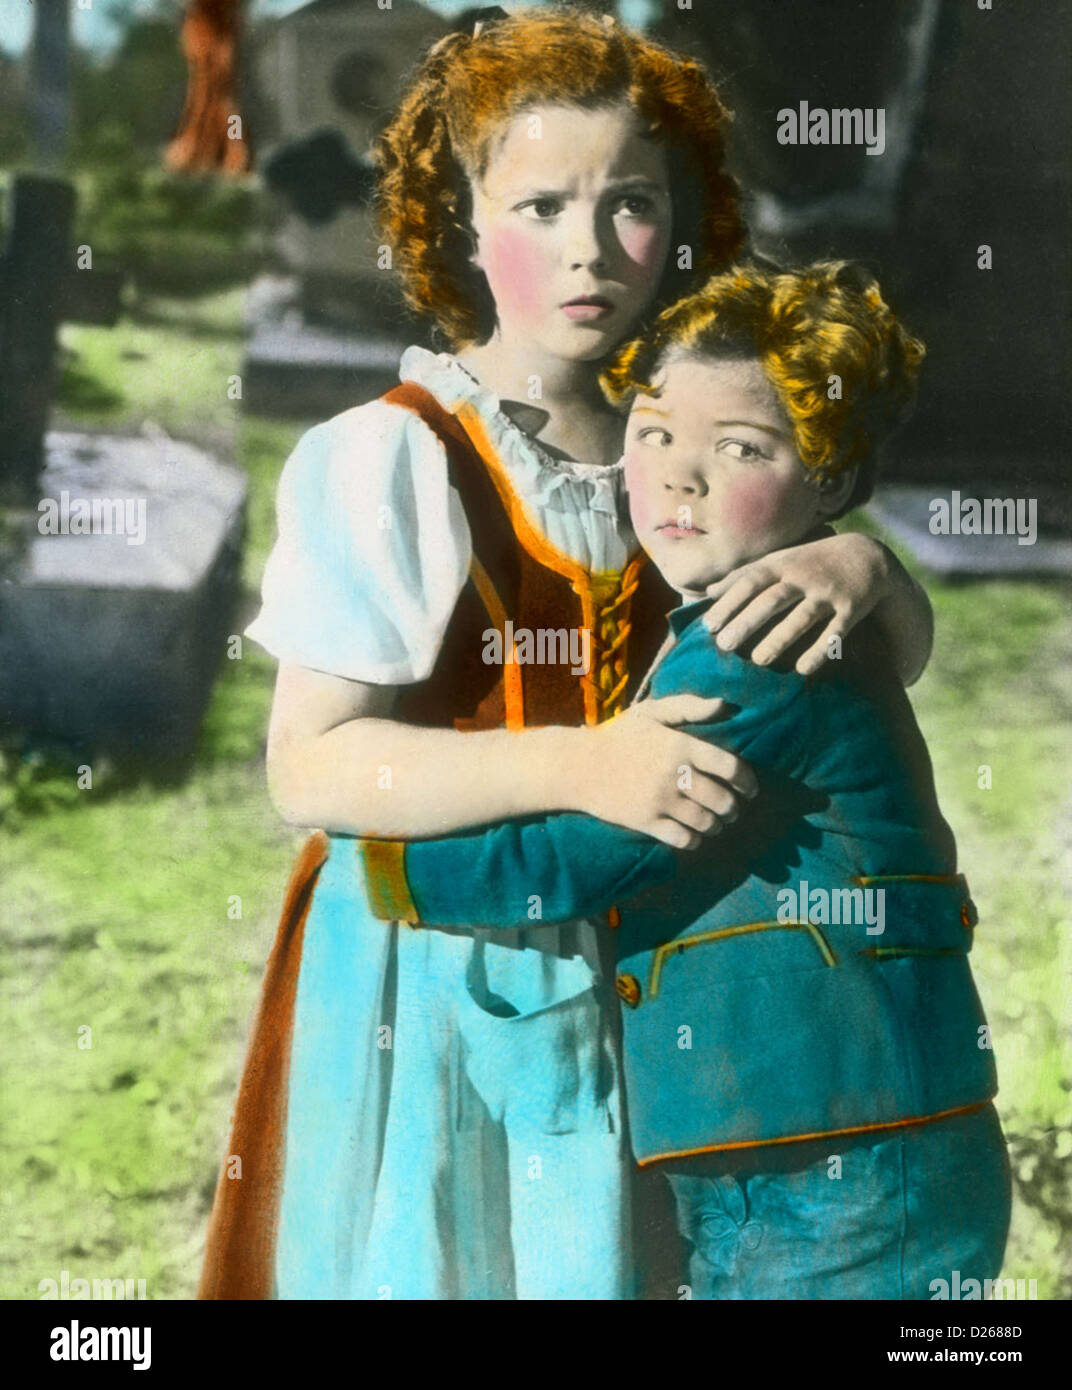 Johnny Russell Stock Photos & Johnny Russell Stock Images - Alamy